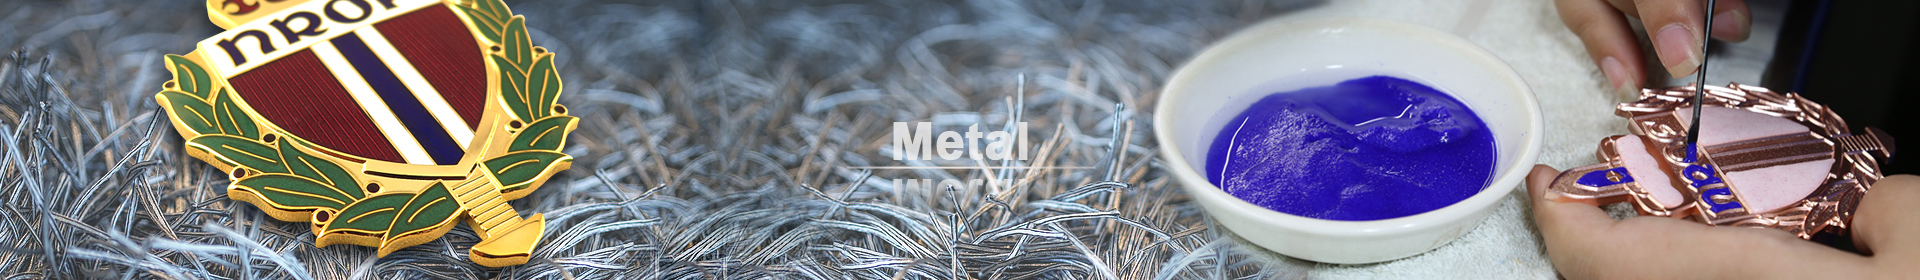 Use fashion metal ornaments to decorate your house for some great days